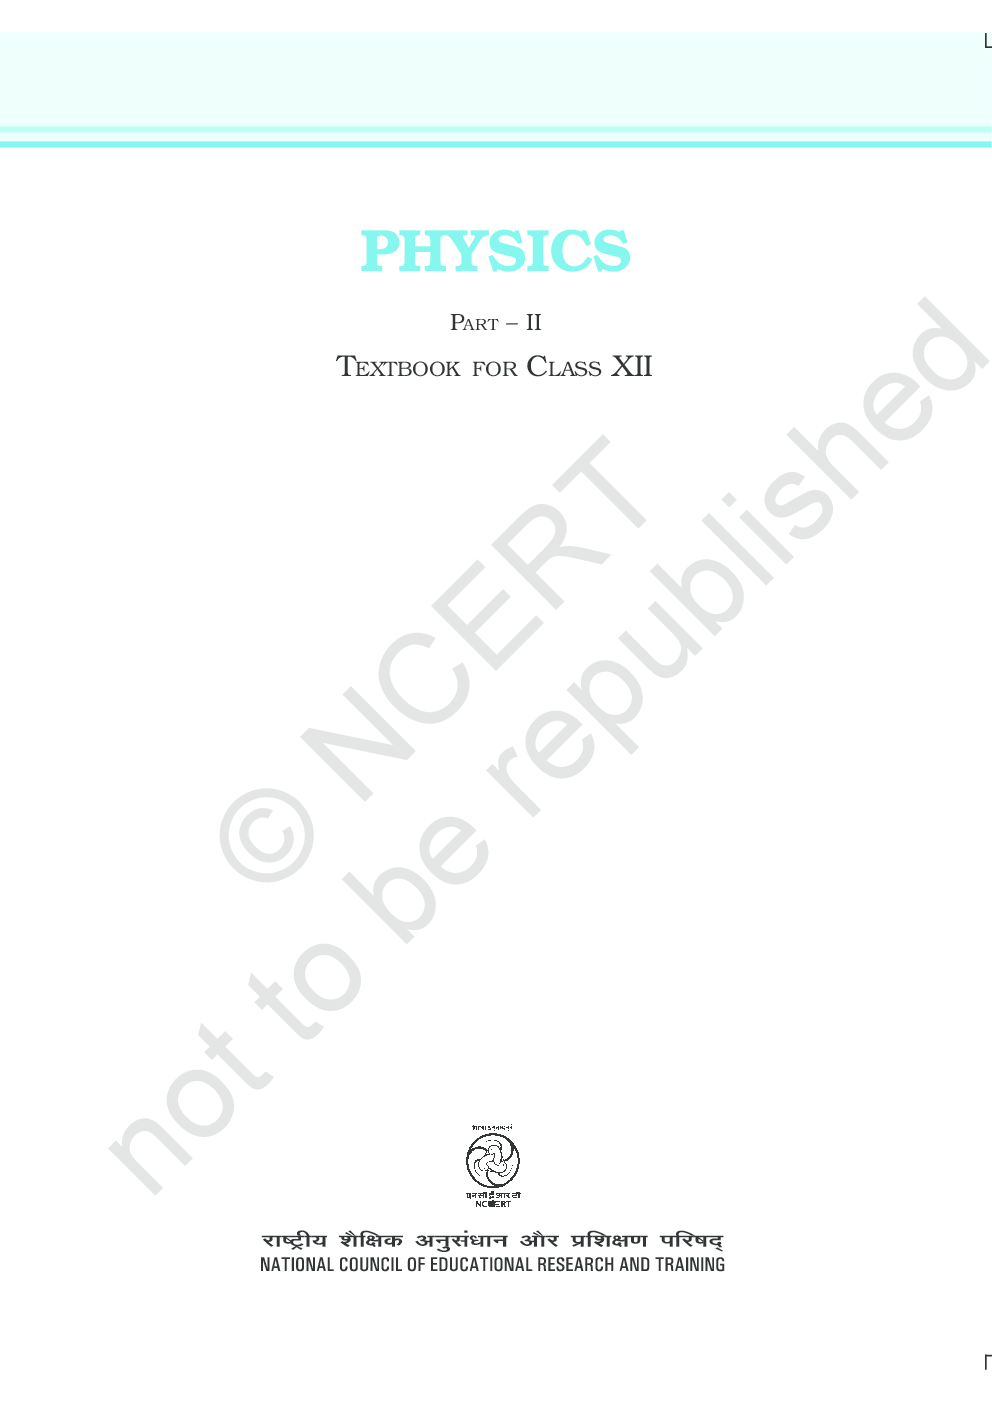 NCERT Physics Books Free PDF Download for Class 11 & 12